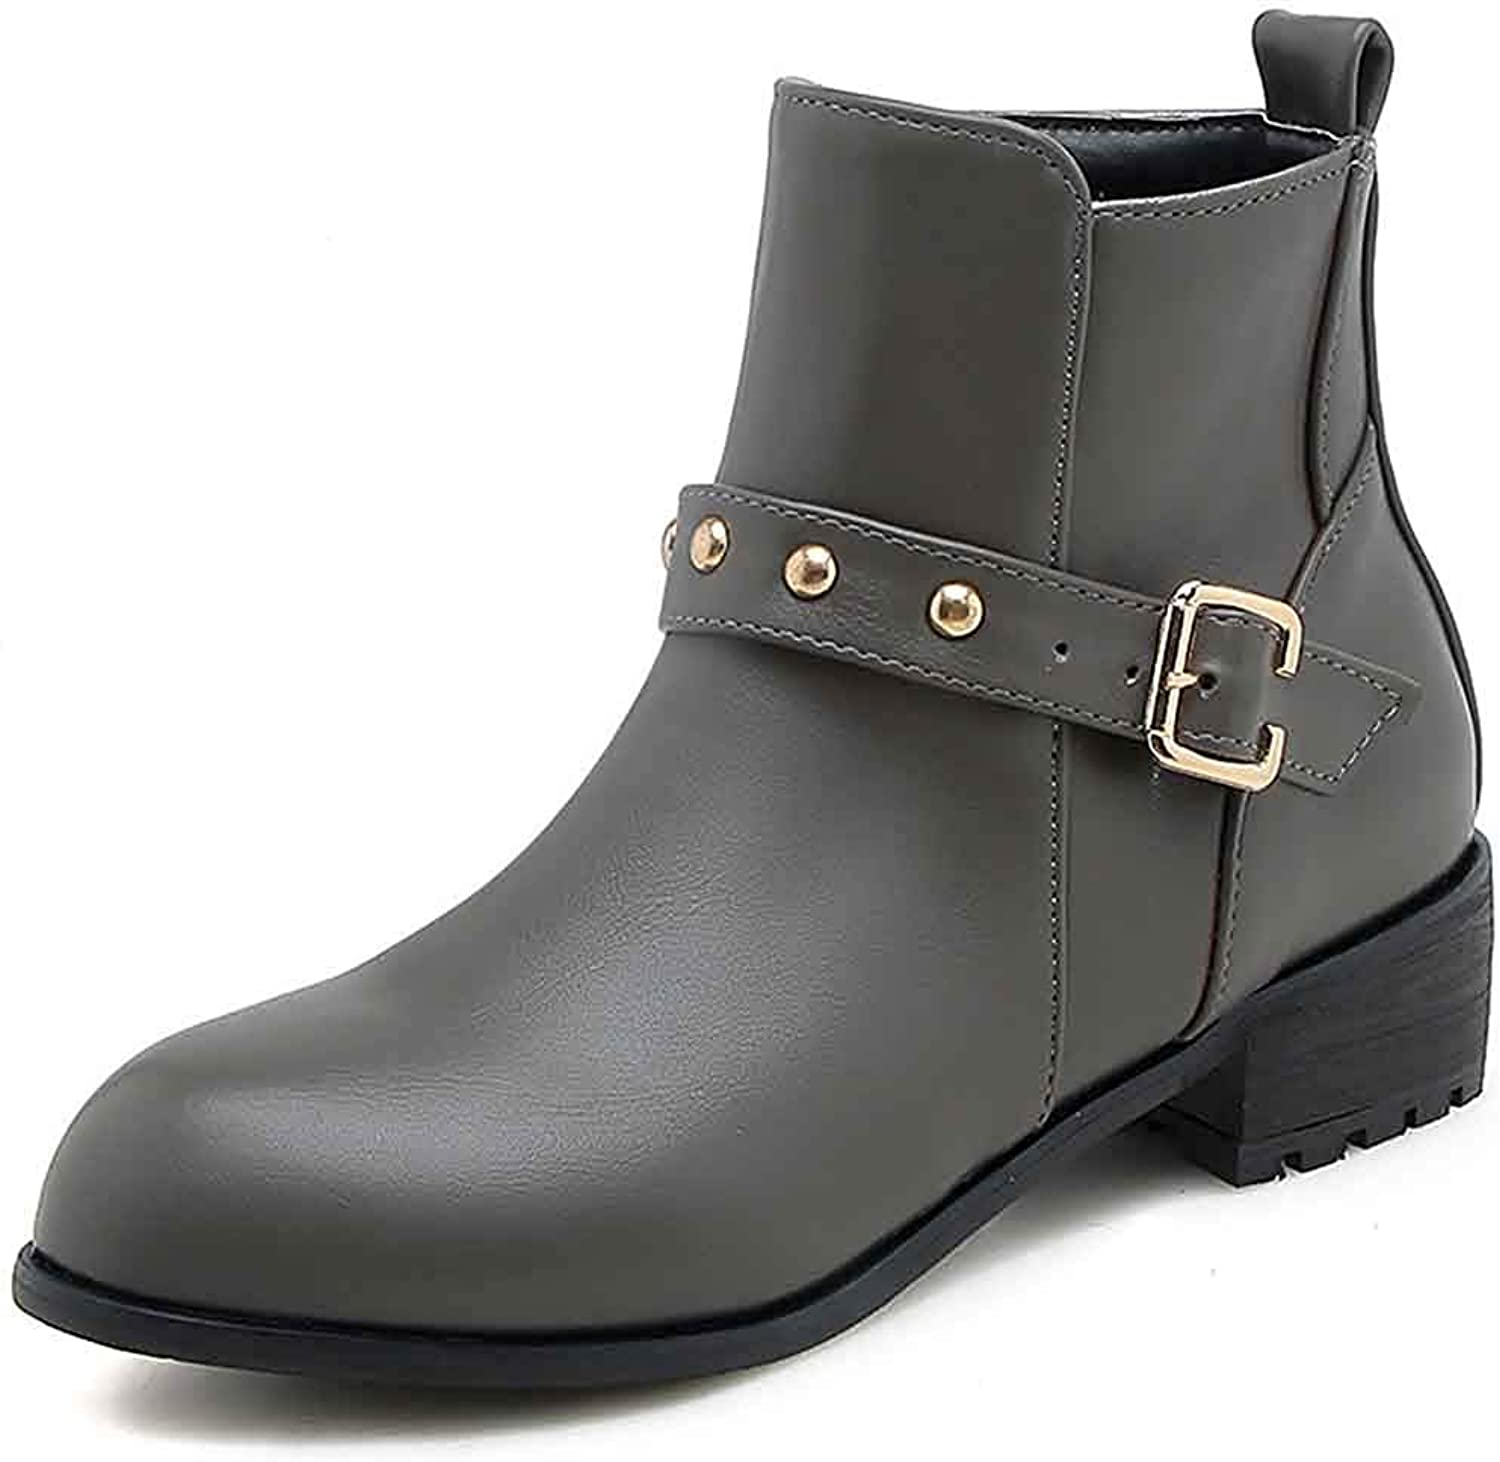 Unm Women's Studded Short Boots with Zipper - Buckle Strap Spikes Round Toe - Low Chunky Heel Ankle Booties